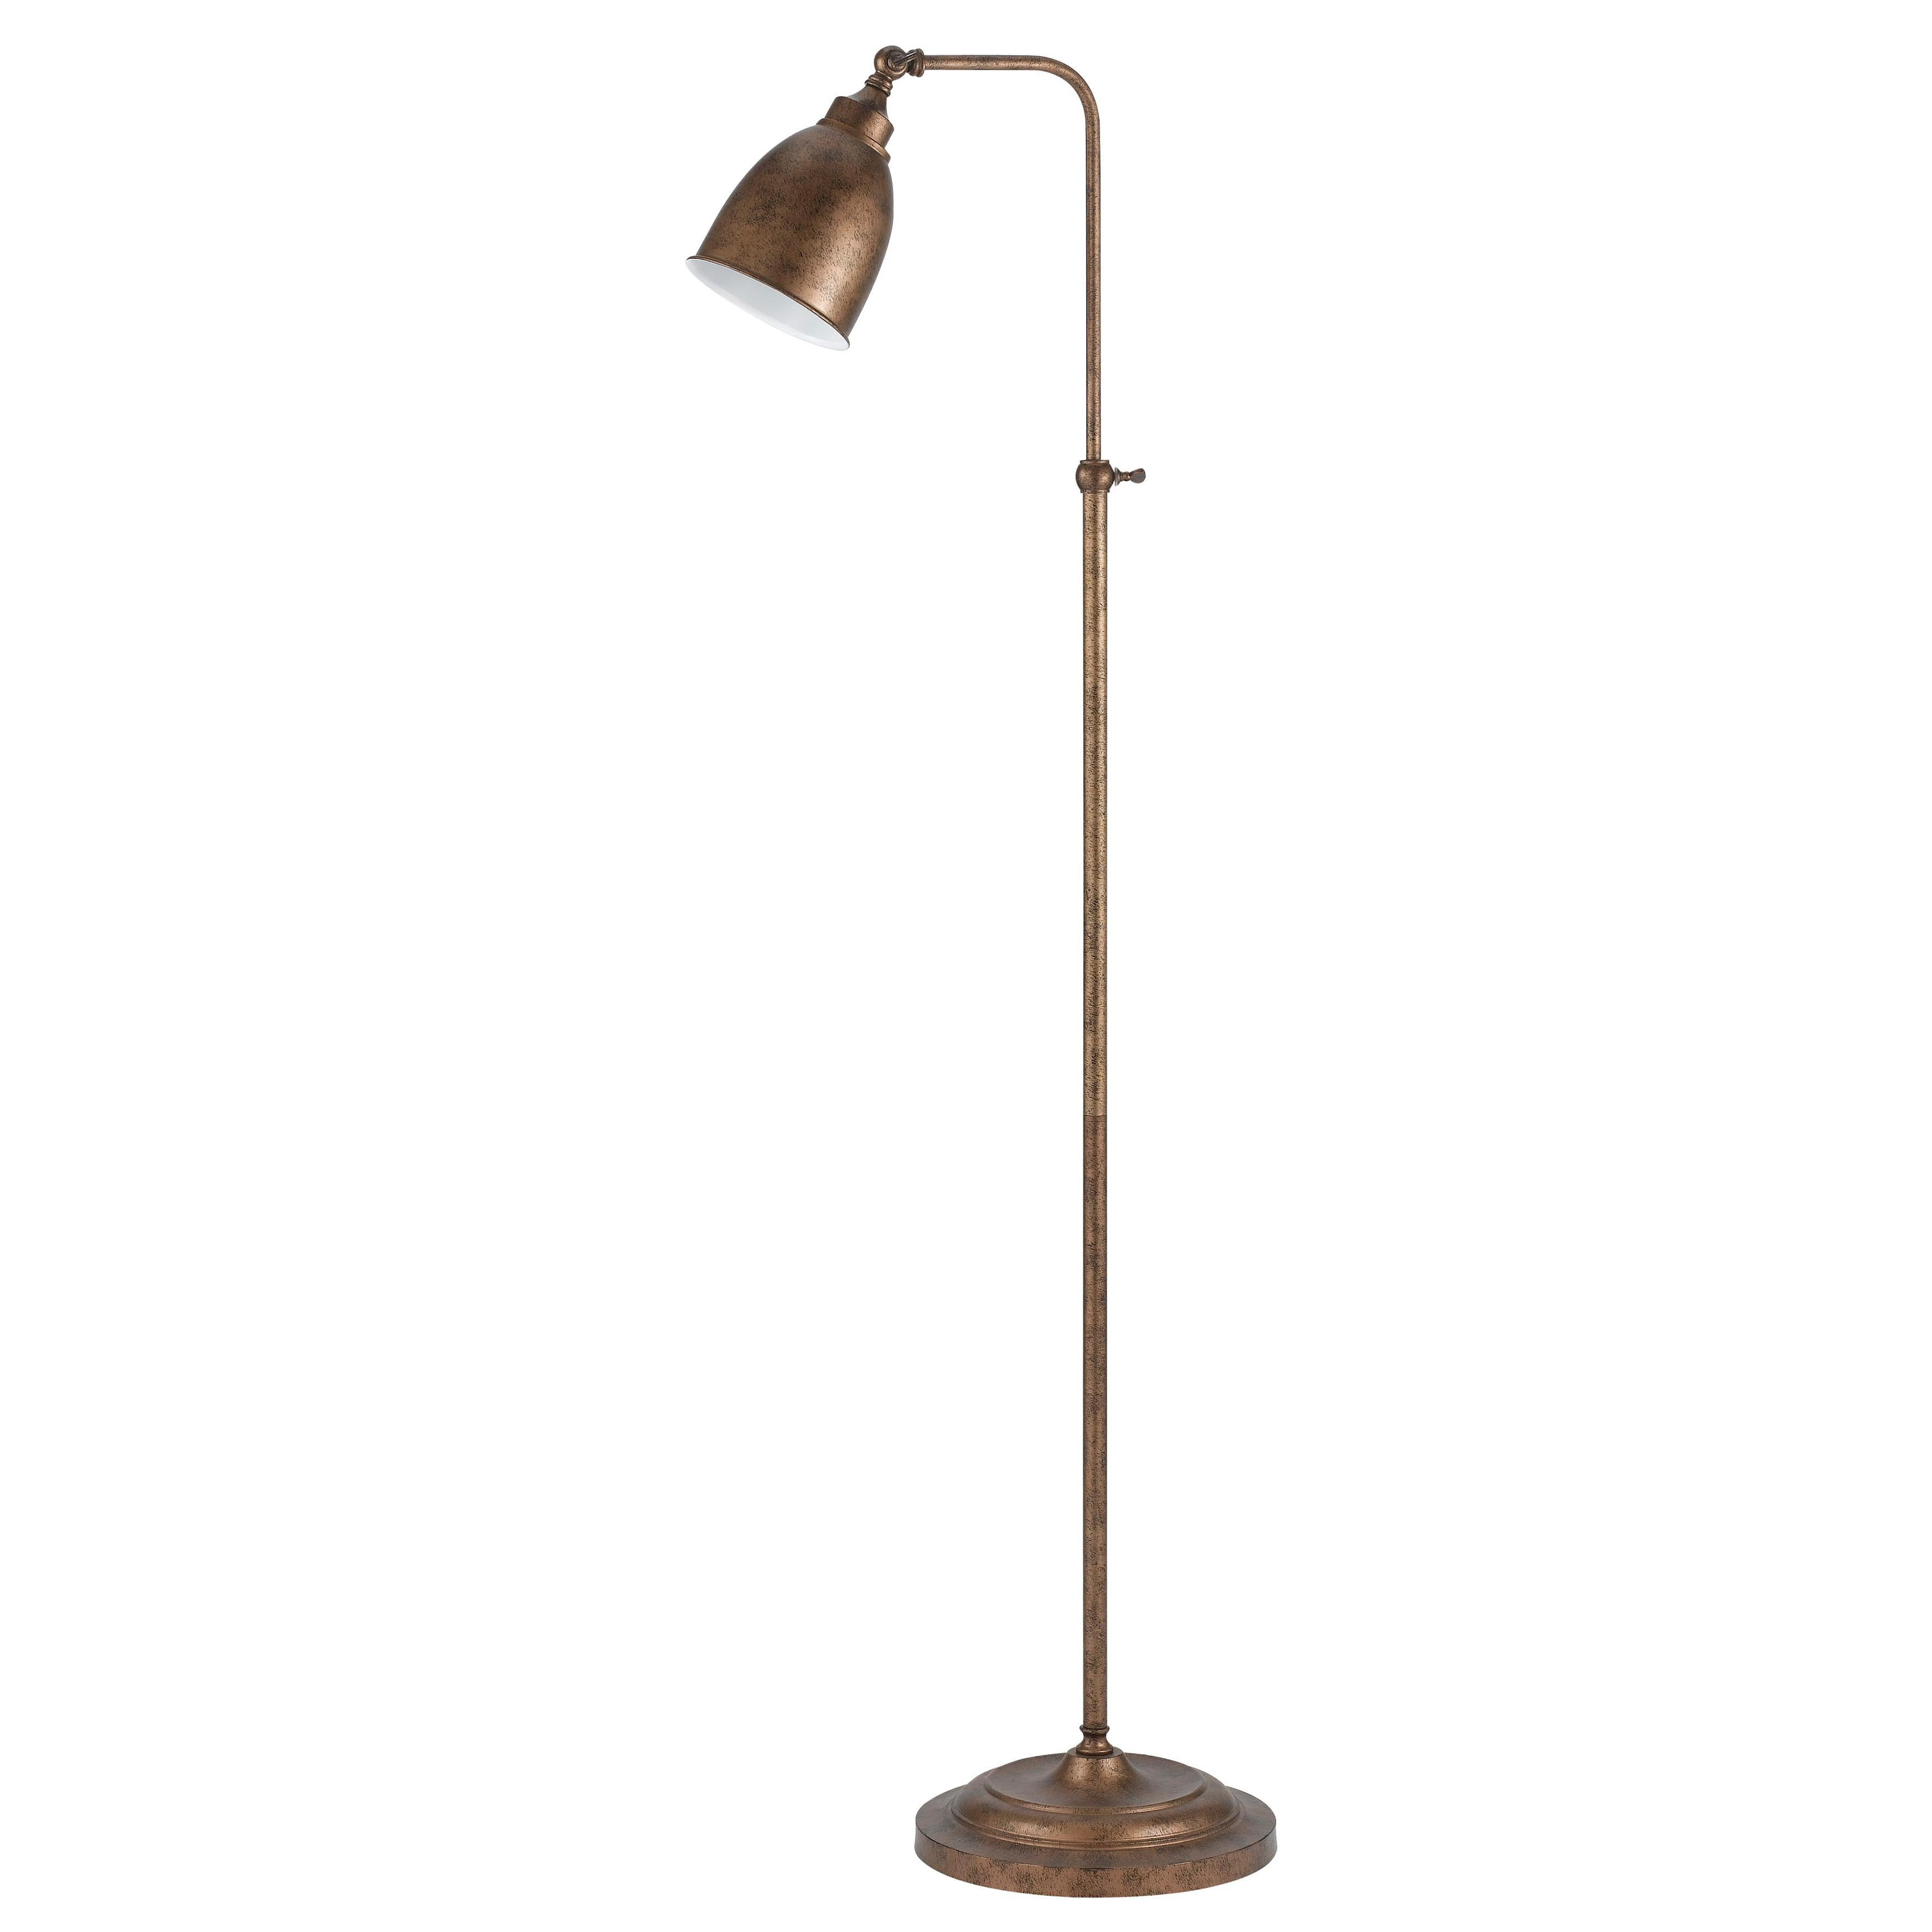 Cal Lighting B0 2032fl Pharmarcy Pole Floor Lamp